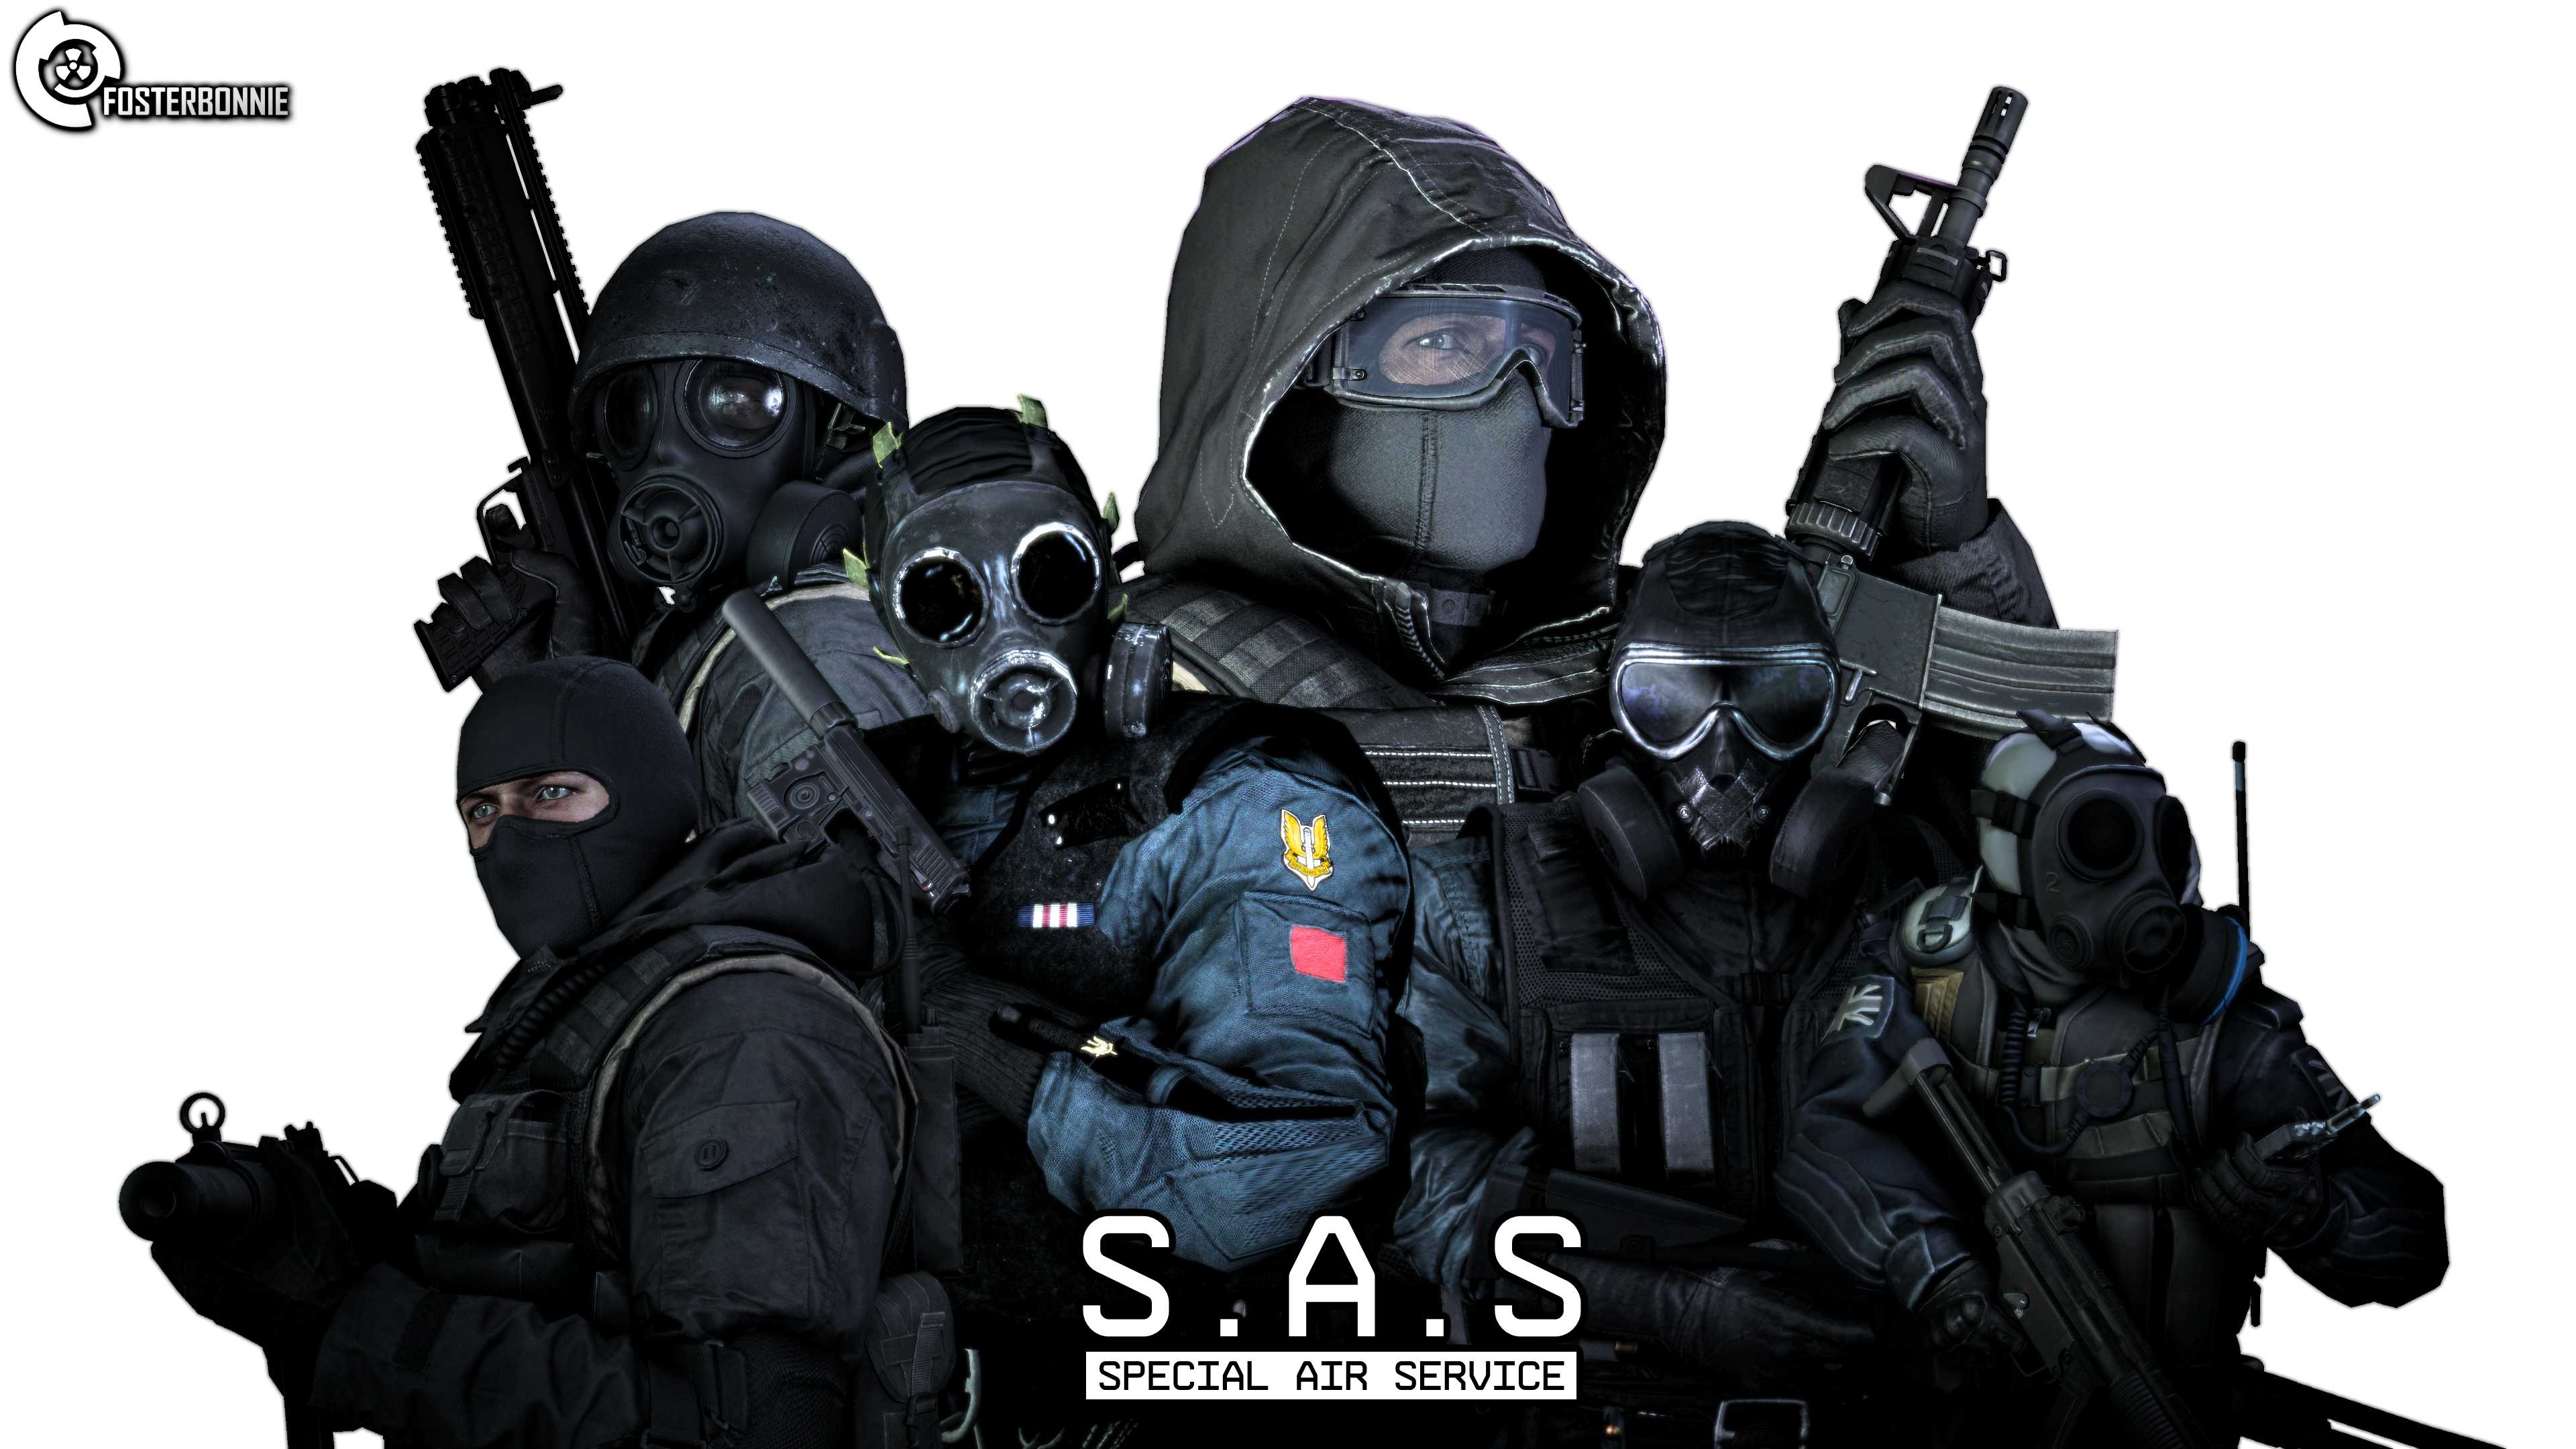 Special Air Service 2 by FosterBonnie on DeviantArt